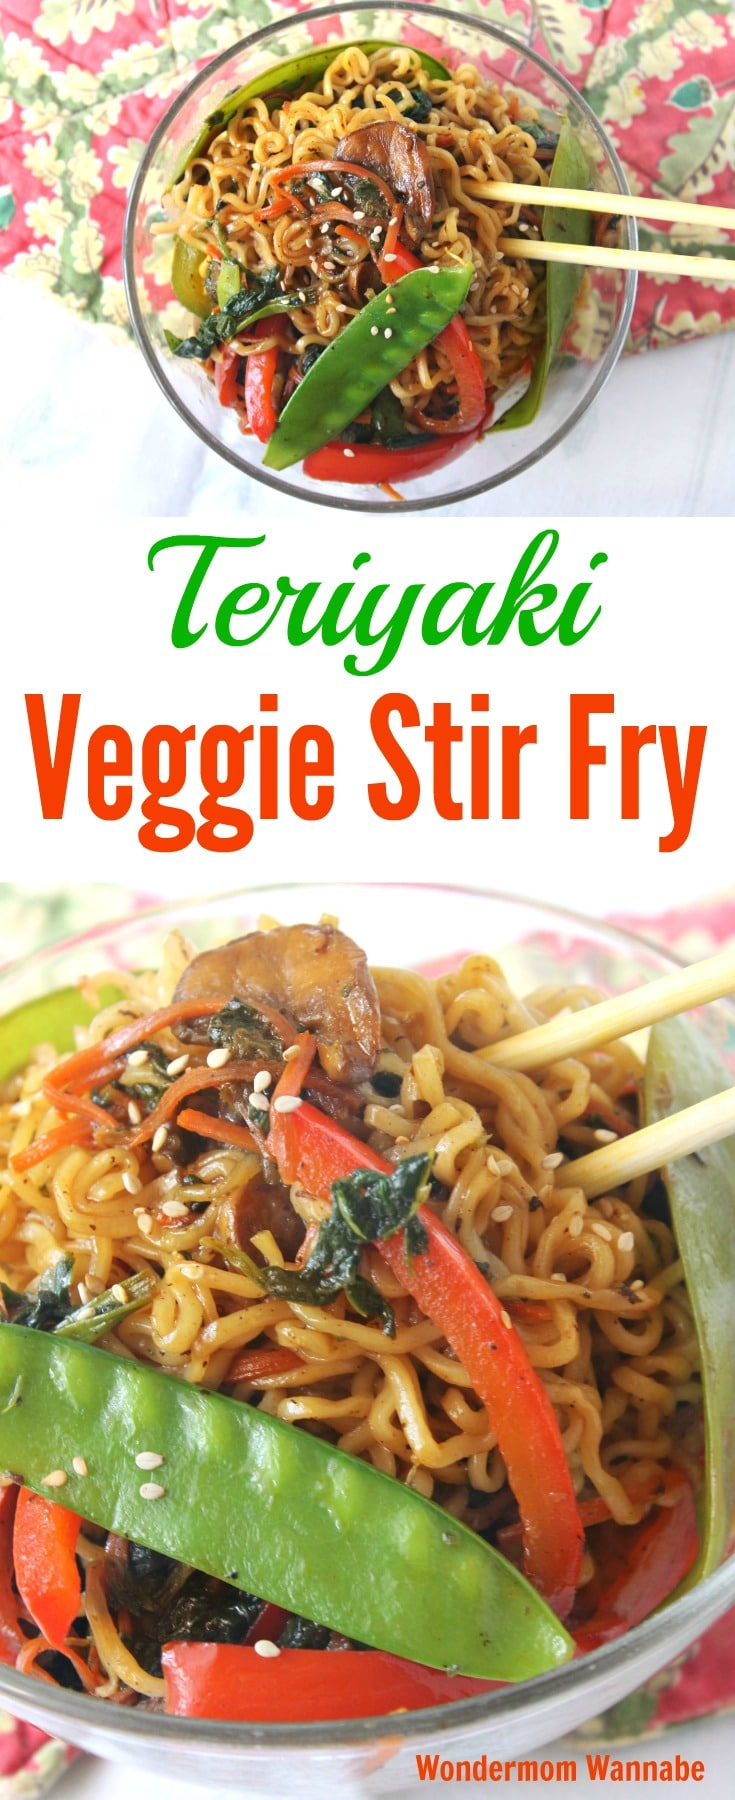 This Teriyaki Veggie Stir Fry is an easy and inexpensive meatless meal you can whip up in about 15 minutes. It's a vegetarian dish everyone will love! #stirfry #meatless #veggie #teriyaki via @wondermomwannab